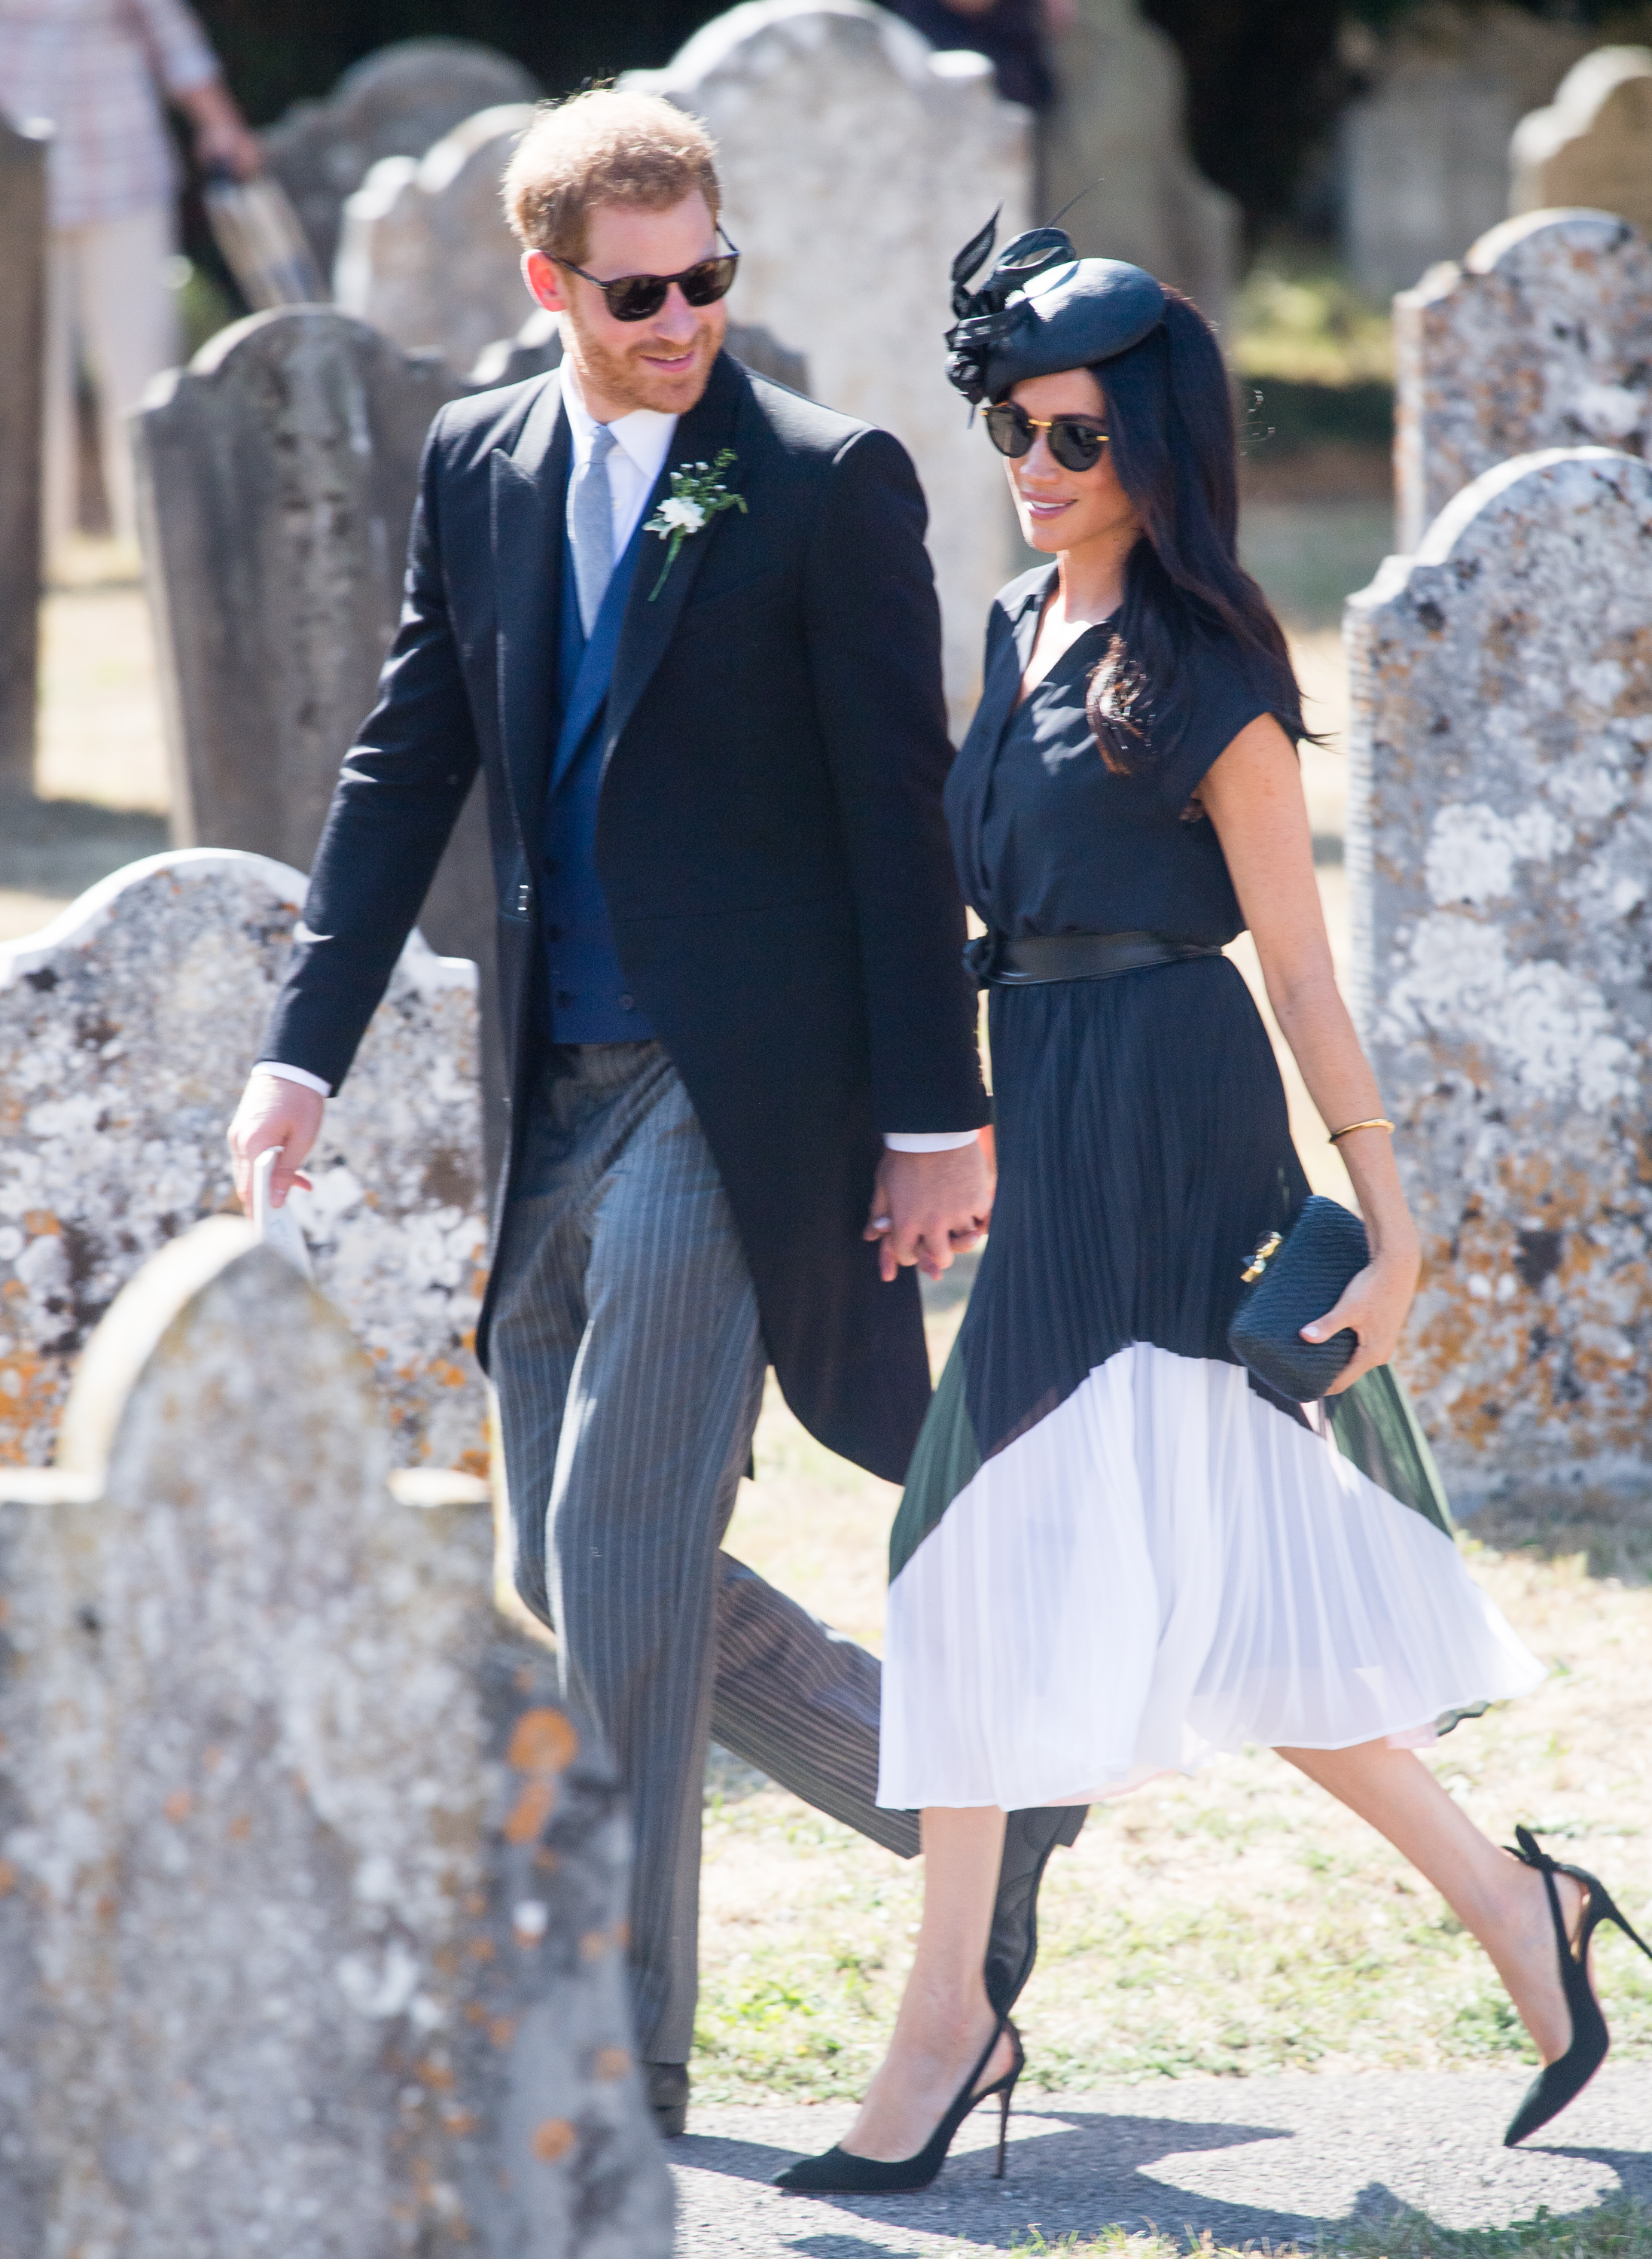 Prince-Harry-Attended-His-Best-Friends-Wedding-With-A-Massive-Hole-In-His-Shoe